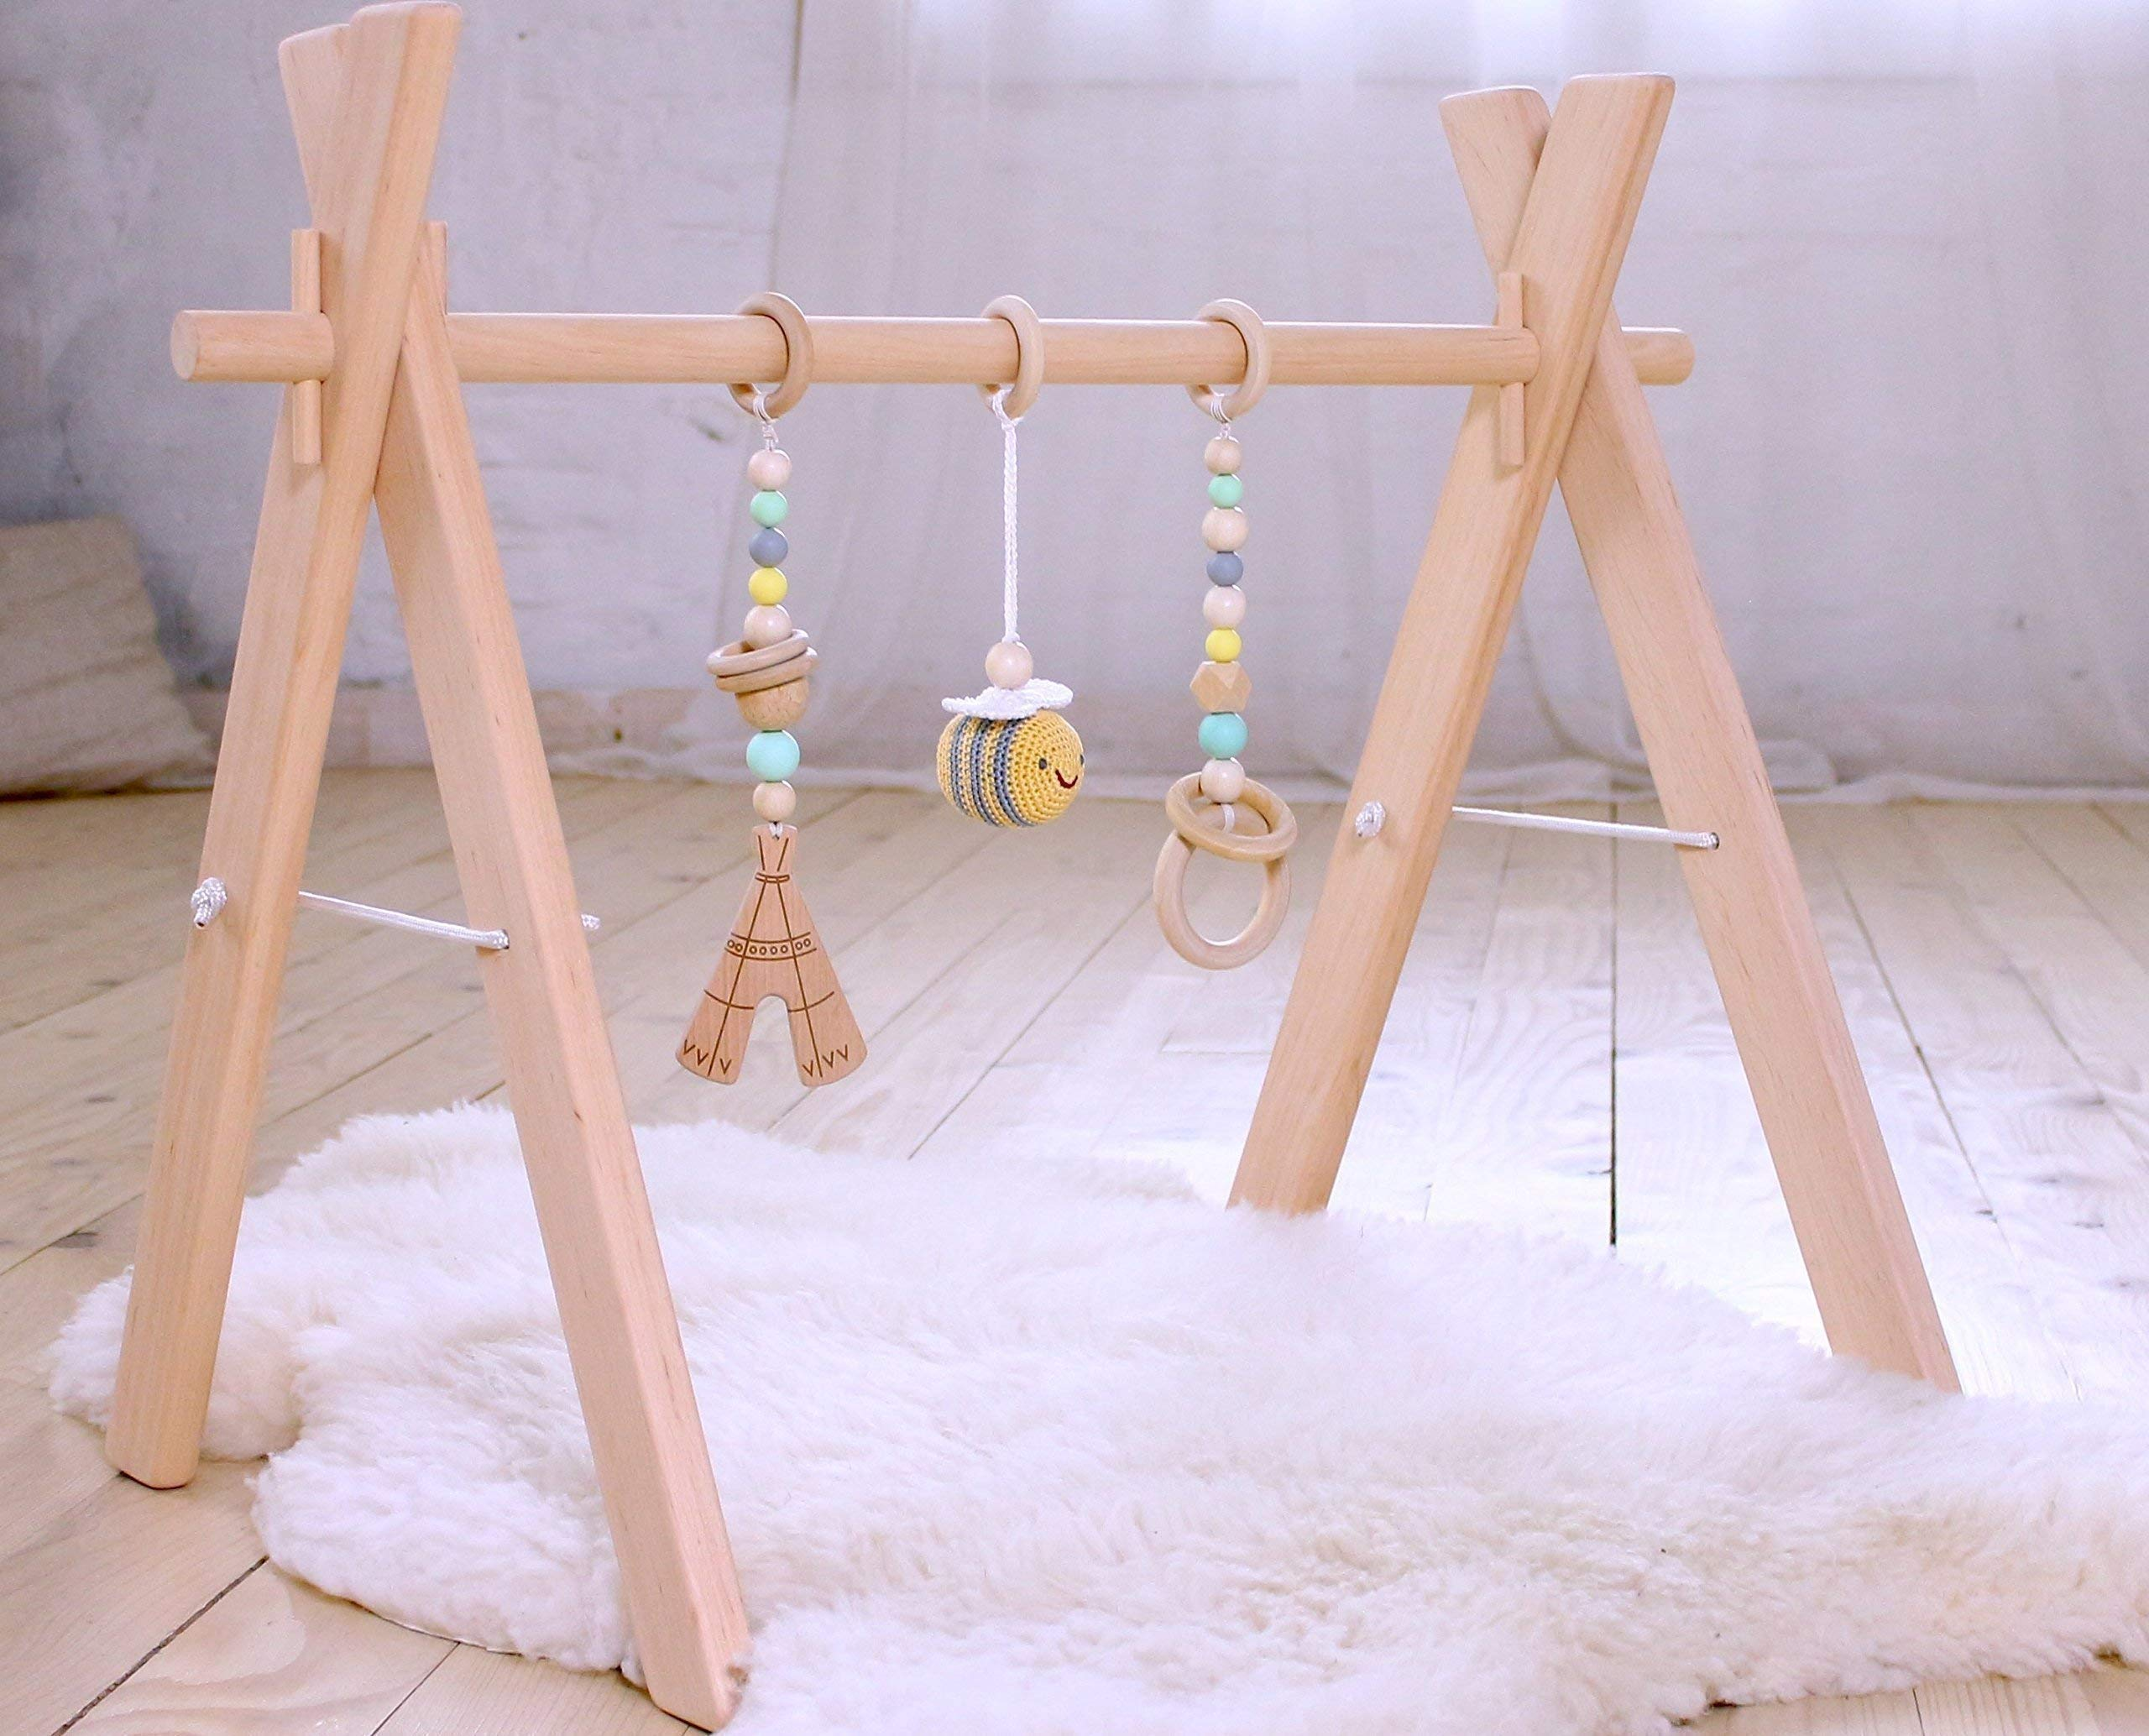 Wooden baby gym with three mobiles: crochet bee, wooden teepee and ring. Mint, Gray & Yellow. Infant play gym wood. Activity center. Baby Shower gift. Gender neutral - Bee baby item